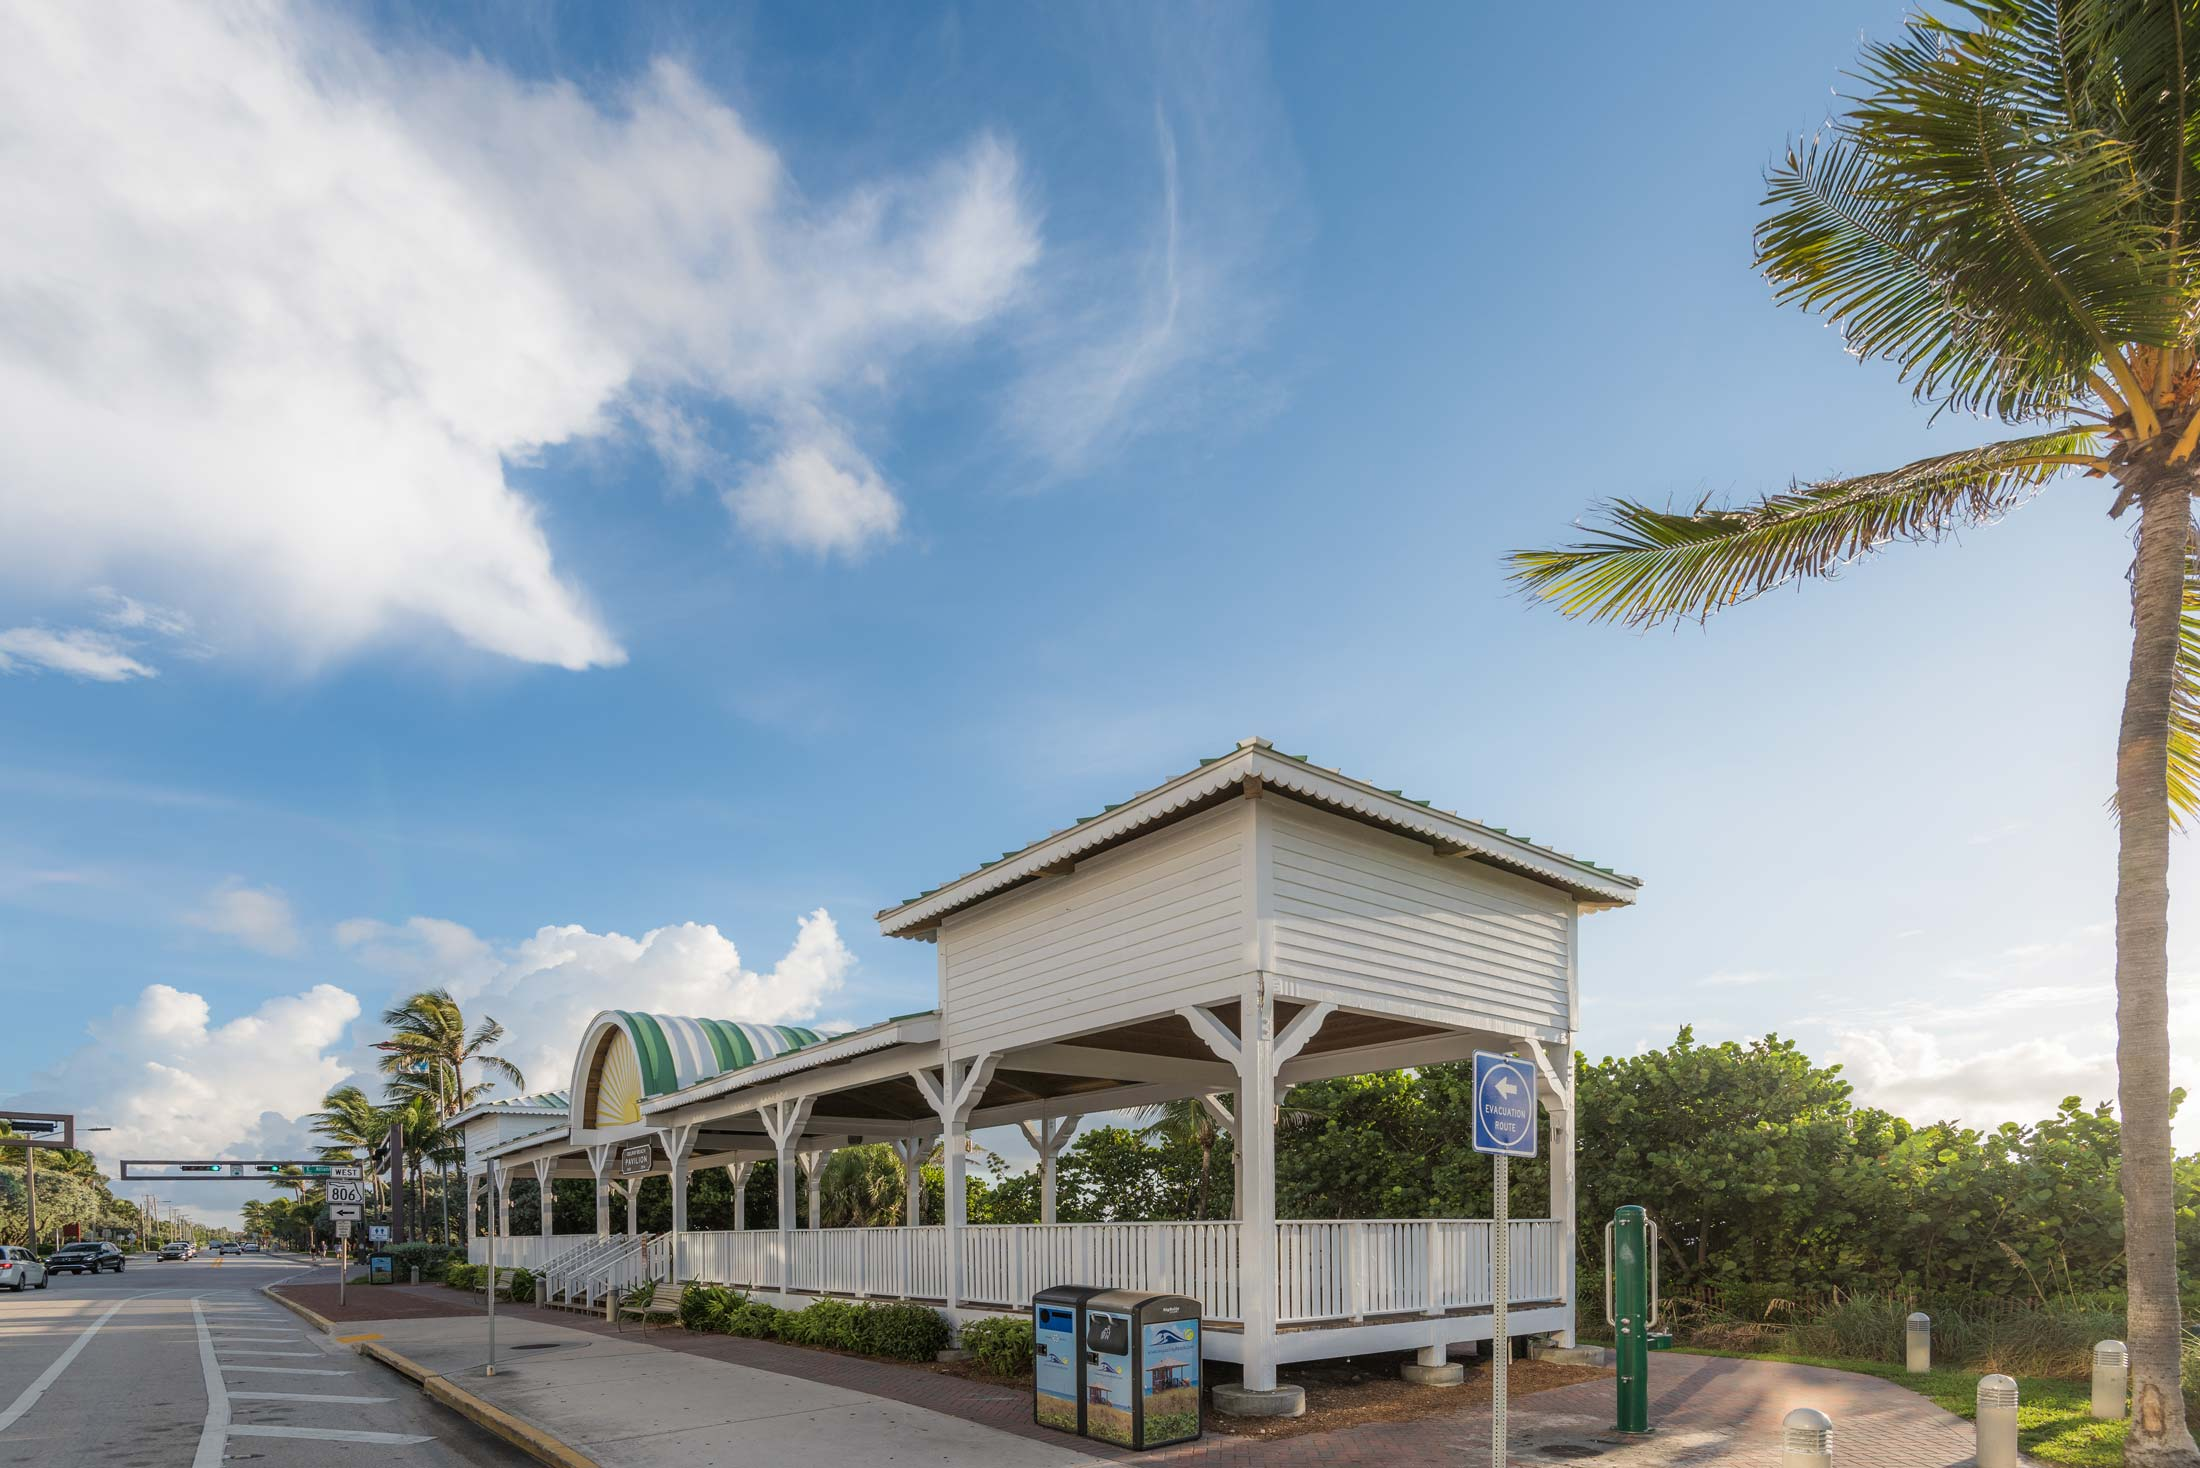 Things To Do In Delray Beach Florida